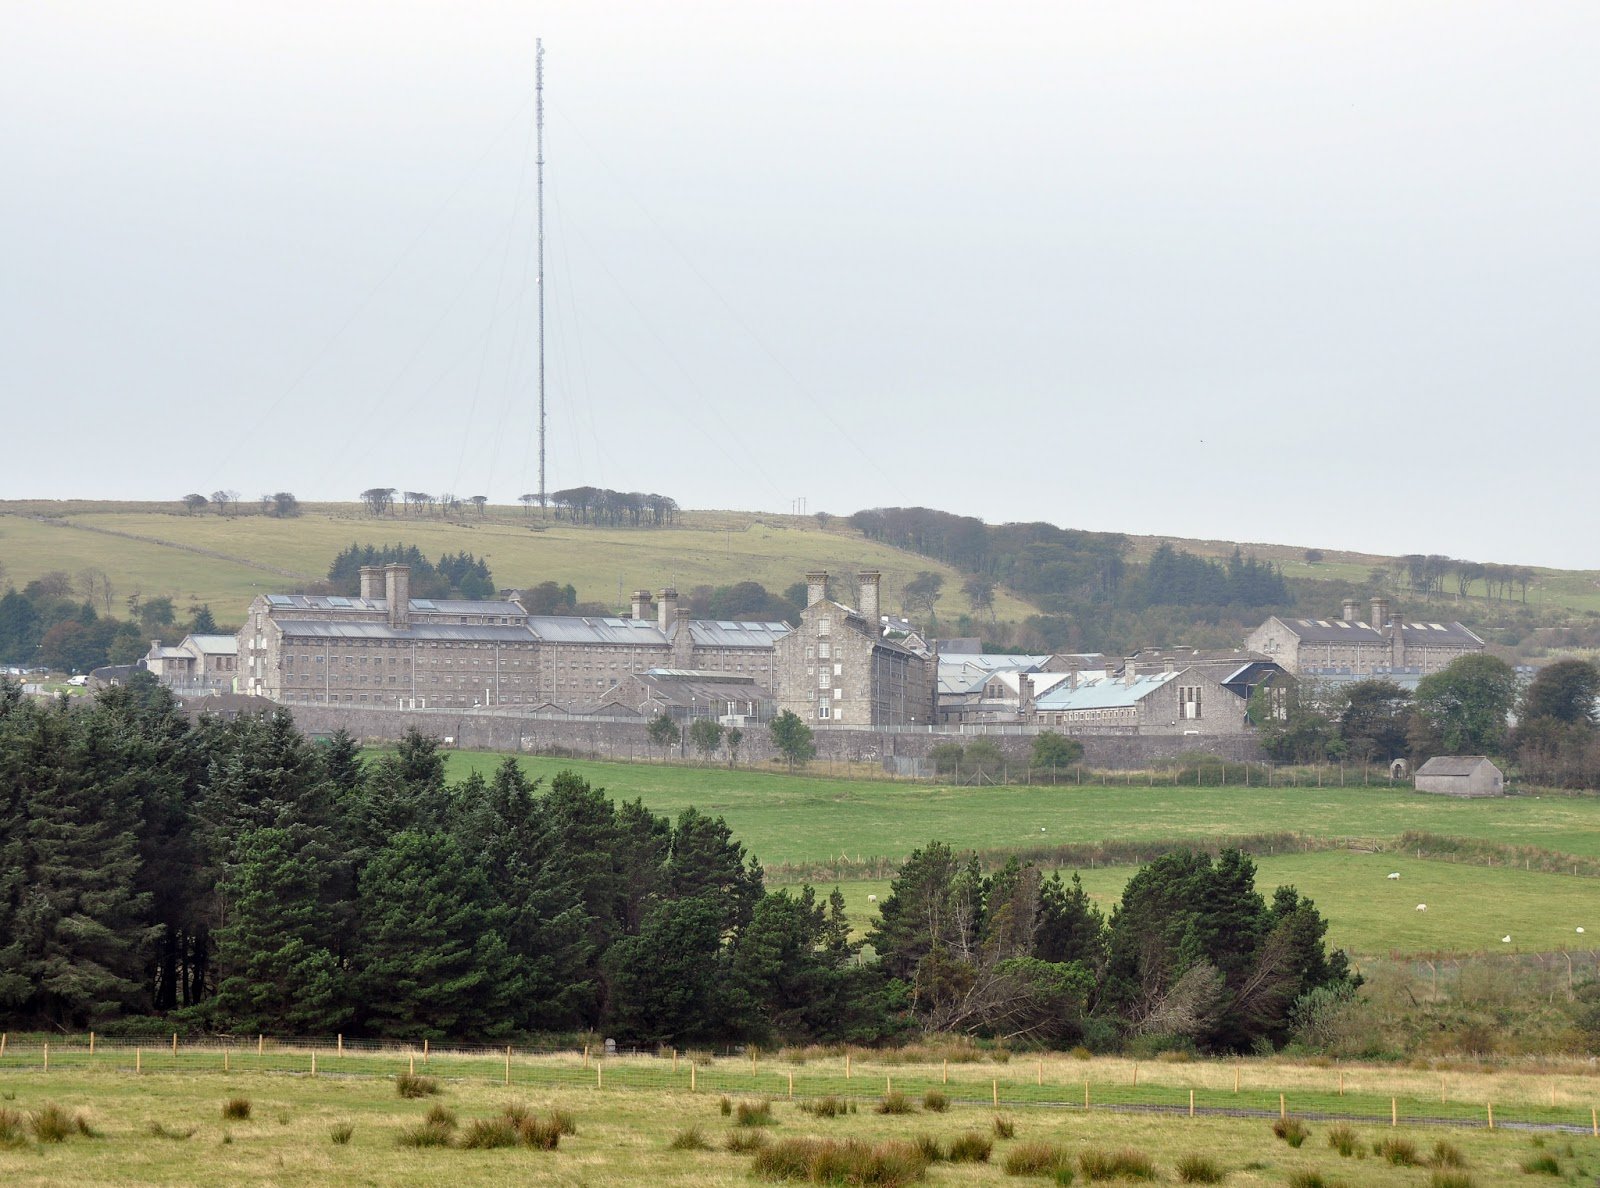 Dartmoor Prison and North Hessary, 19 September 2009